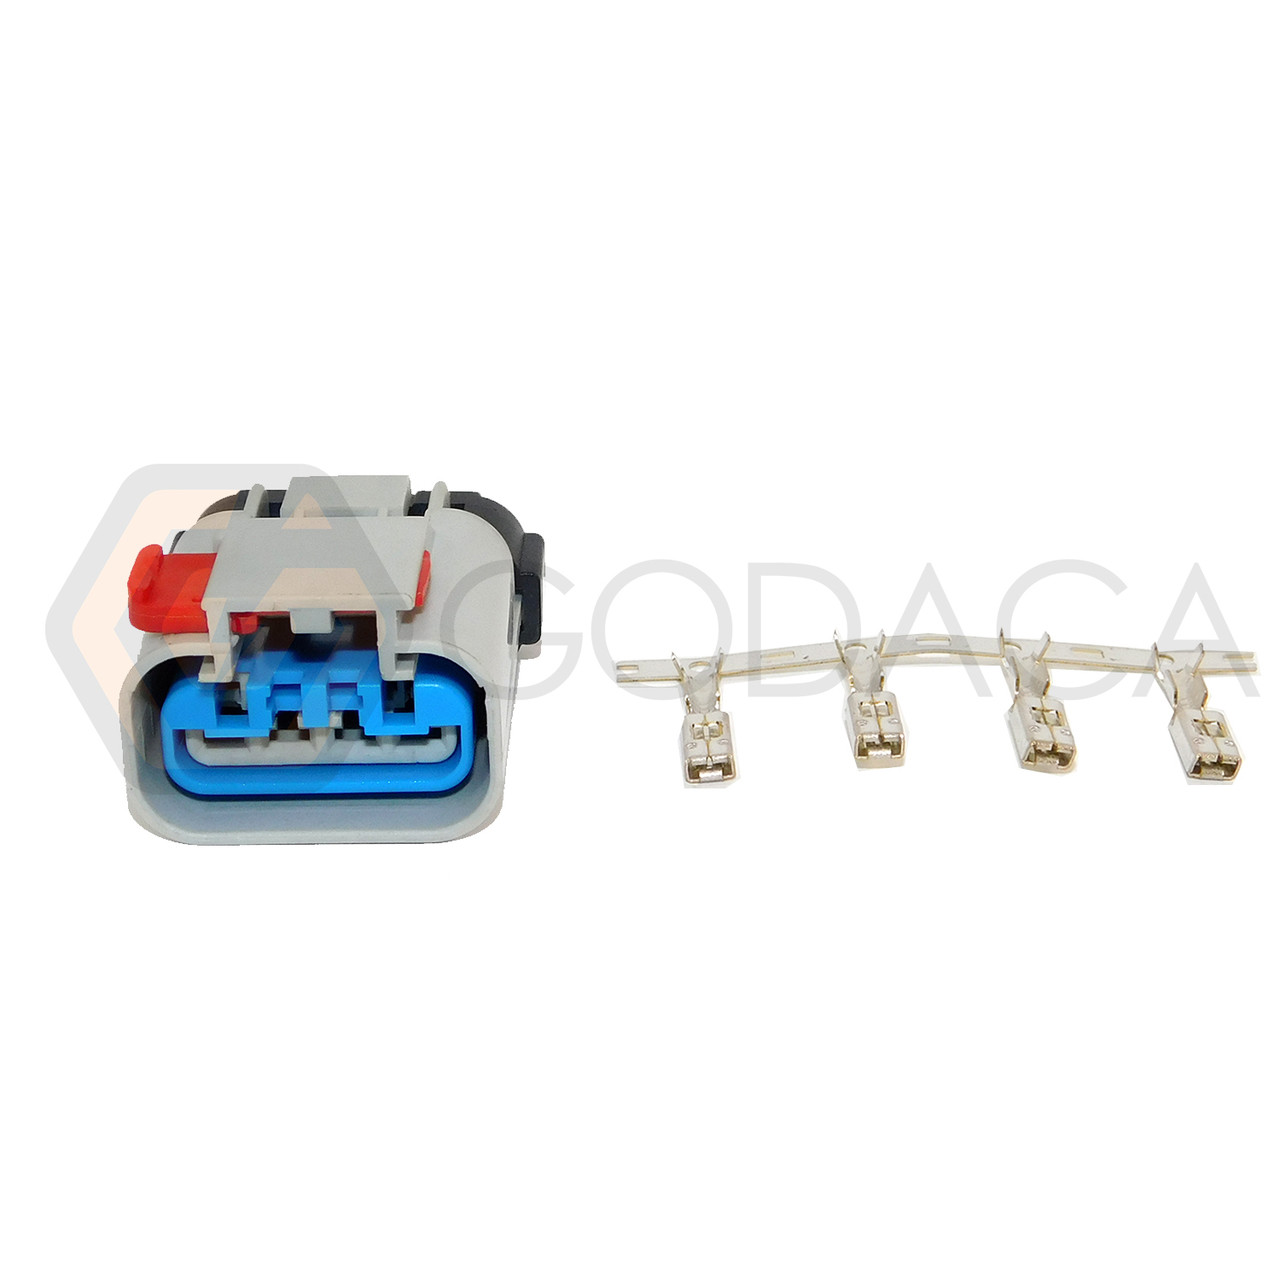 1x connector 4 way 4 pin for dodge fuel pump sender pt1402 w out wire godaca llc  [ 1280 x 1280 Pixel ]